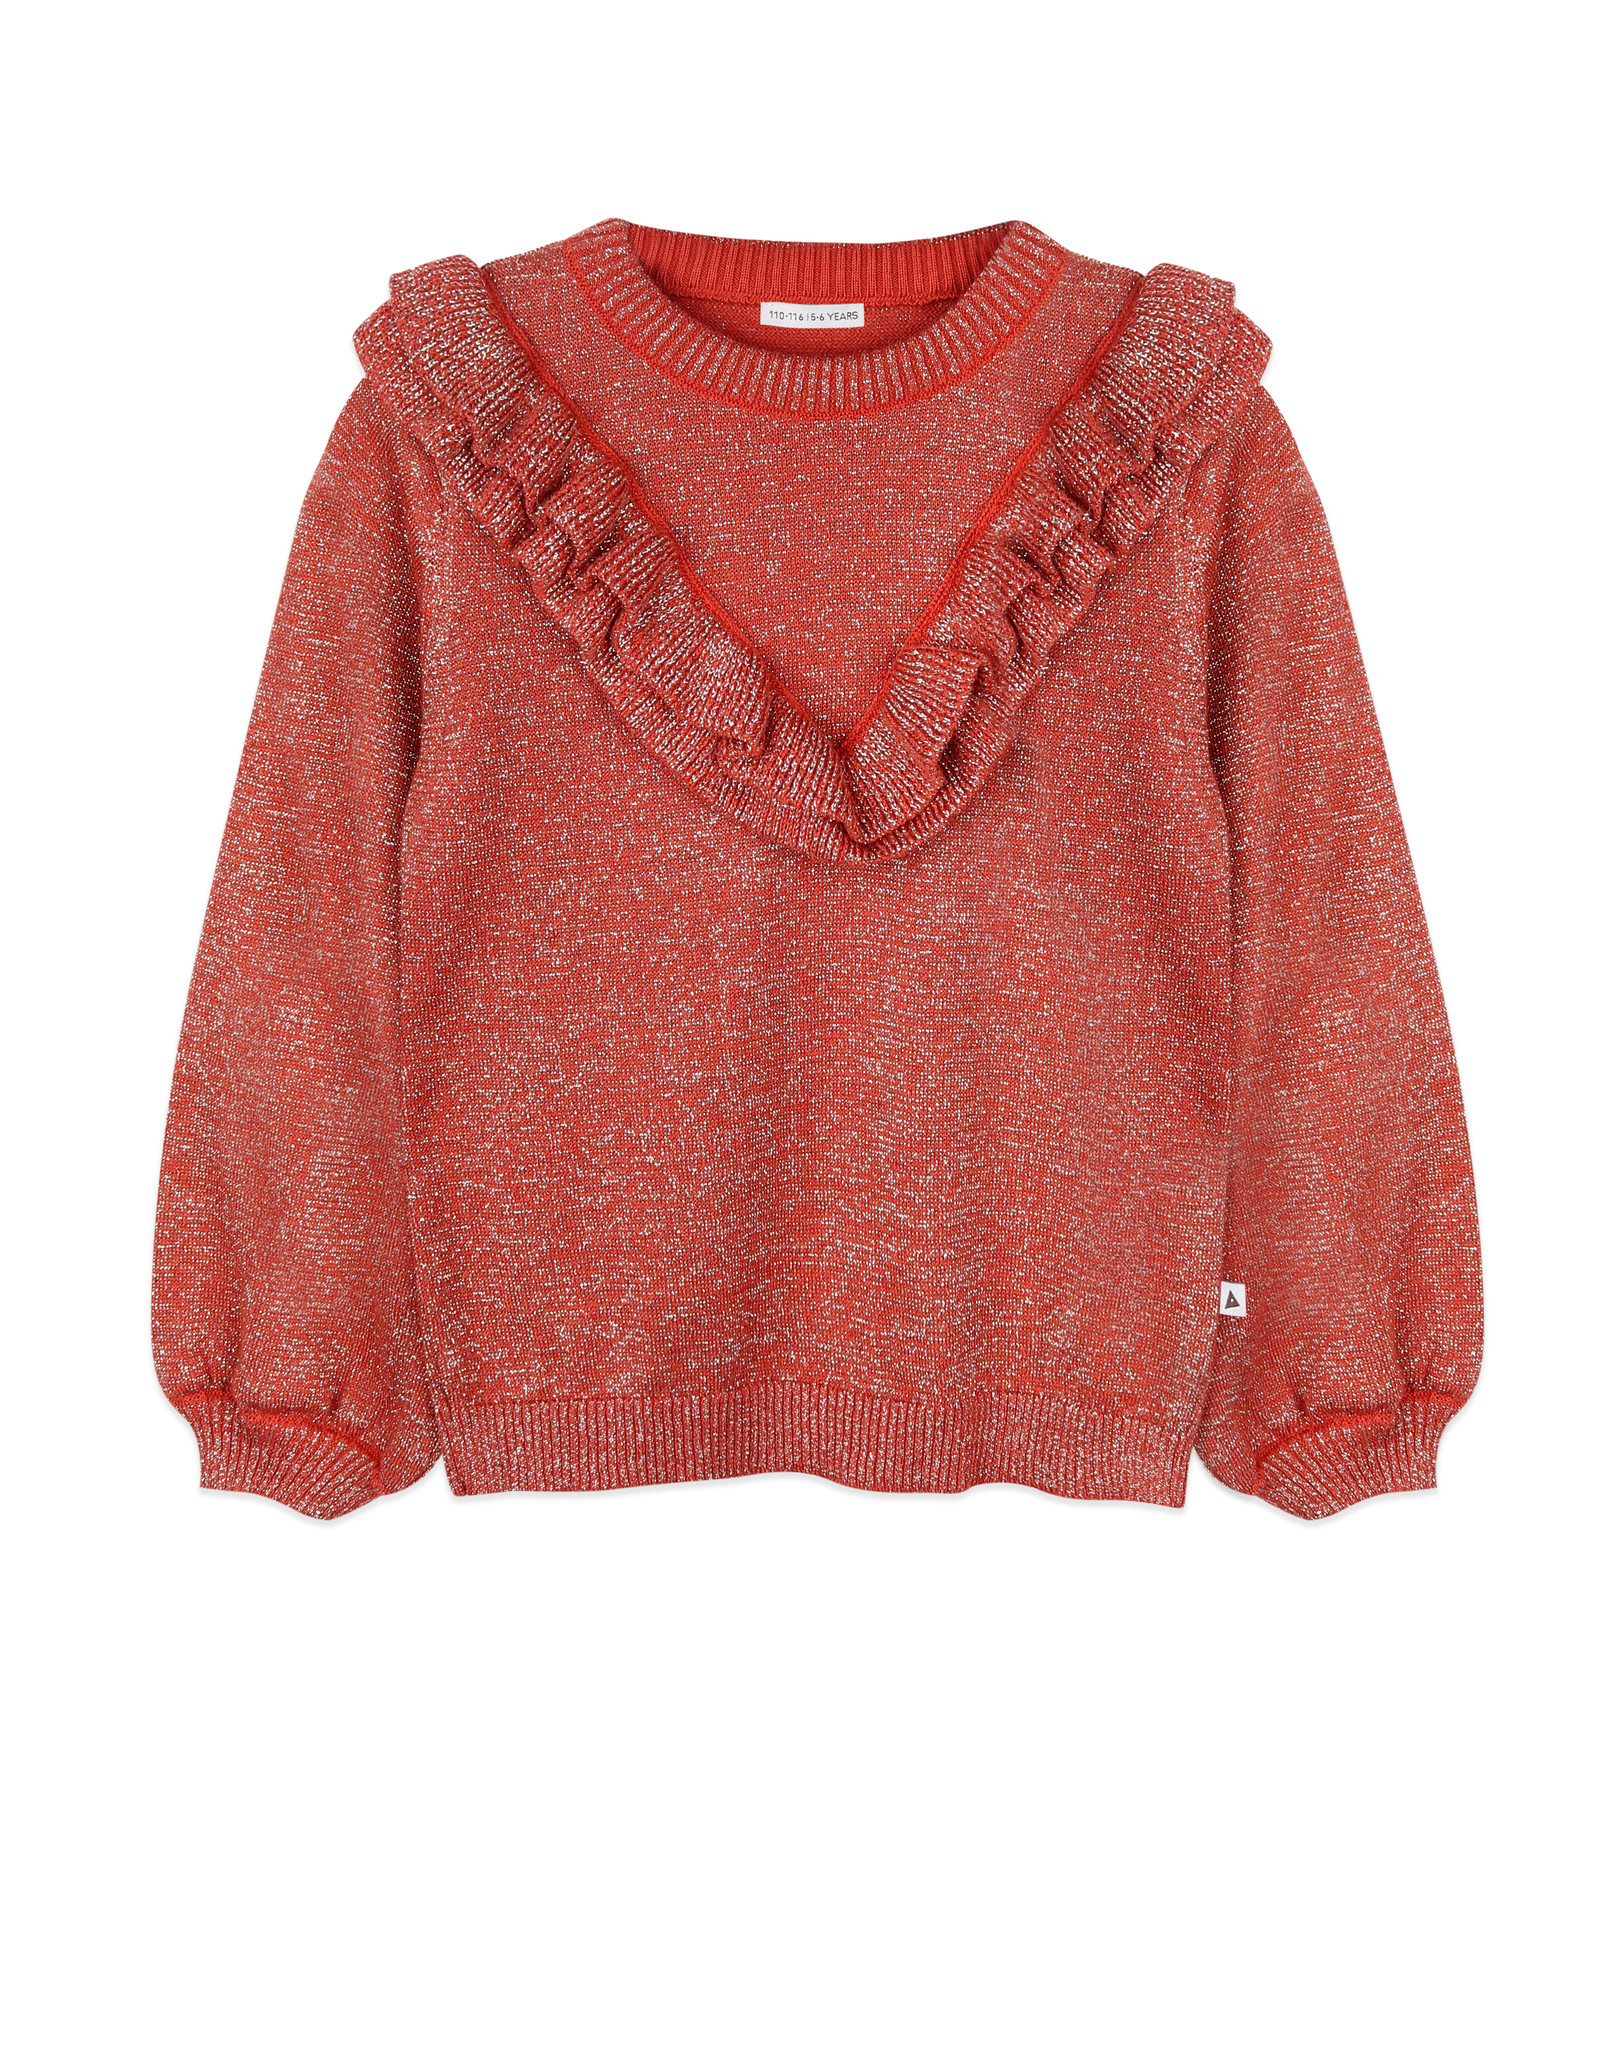 Ammehoela Sweater Cher Bombay brown